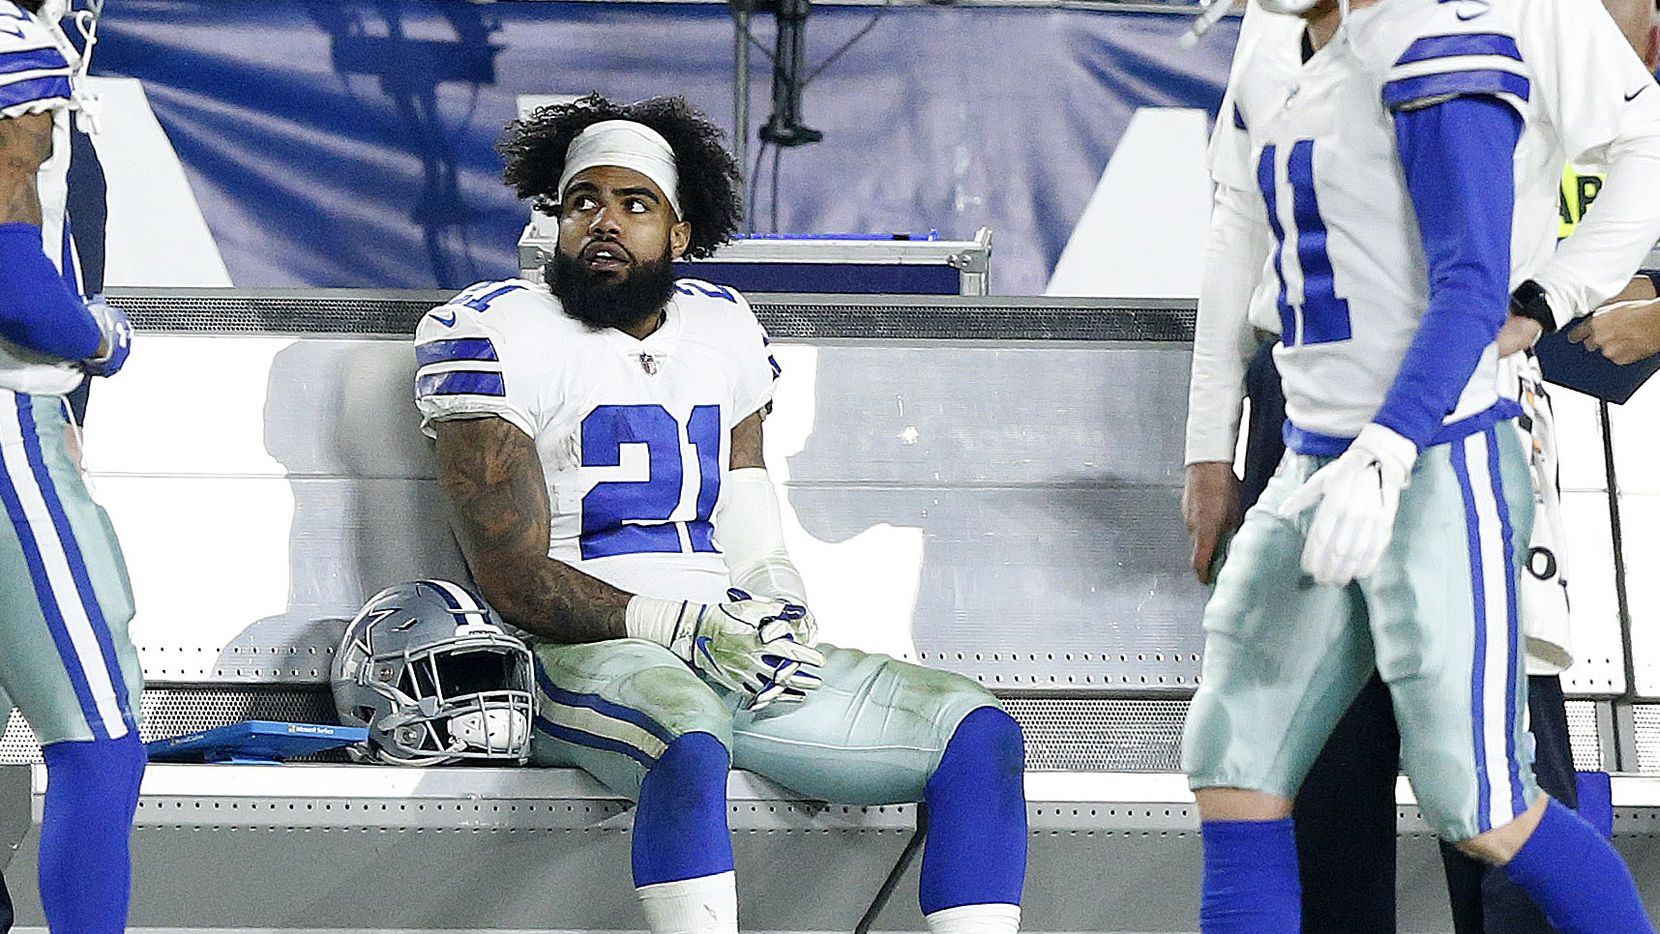 Dallas Cowboys running back Ezekiel Elliott (21) rests on the bench during the third quarter of their NFC Divisional Playoff game against the Los Angeles Rams at Los Angeles Memorial Coliseum in Los Angeles, Saturday, January 12, 2019. Tye Cowboys lost 30-22. (Tom Fox/The Dallas Morning News)